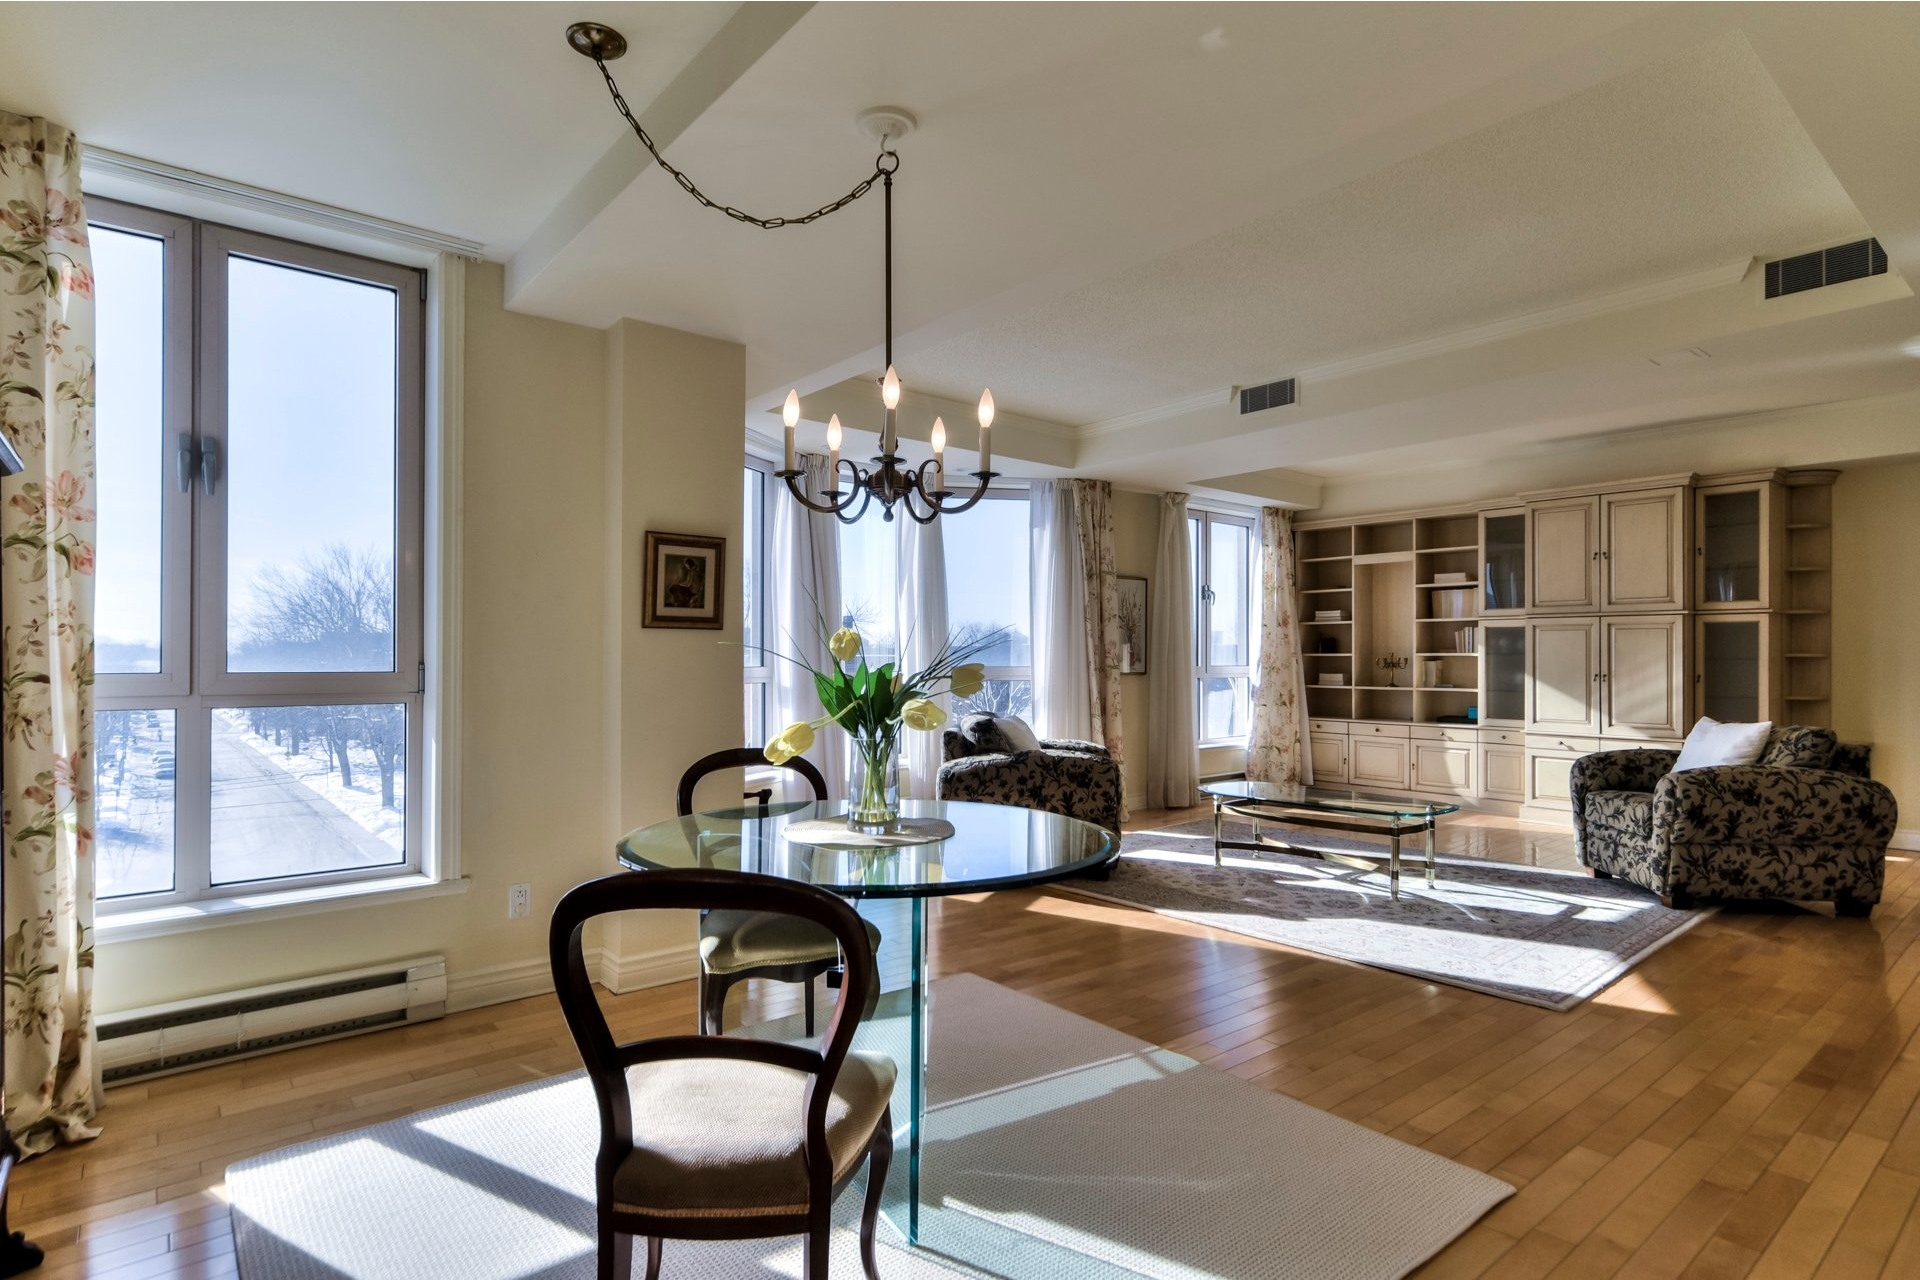 image 7 - Apartment For sale Mont-Royal - 8 rooms